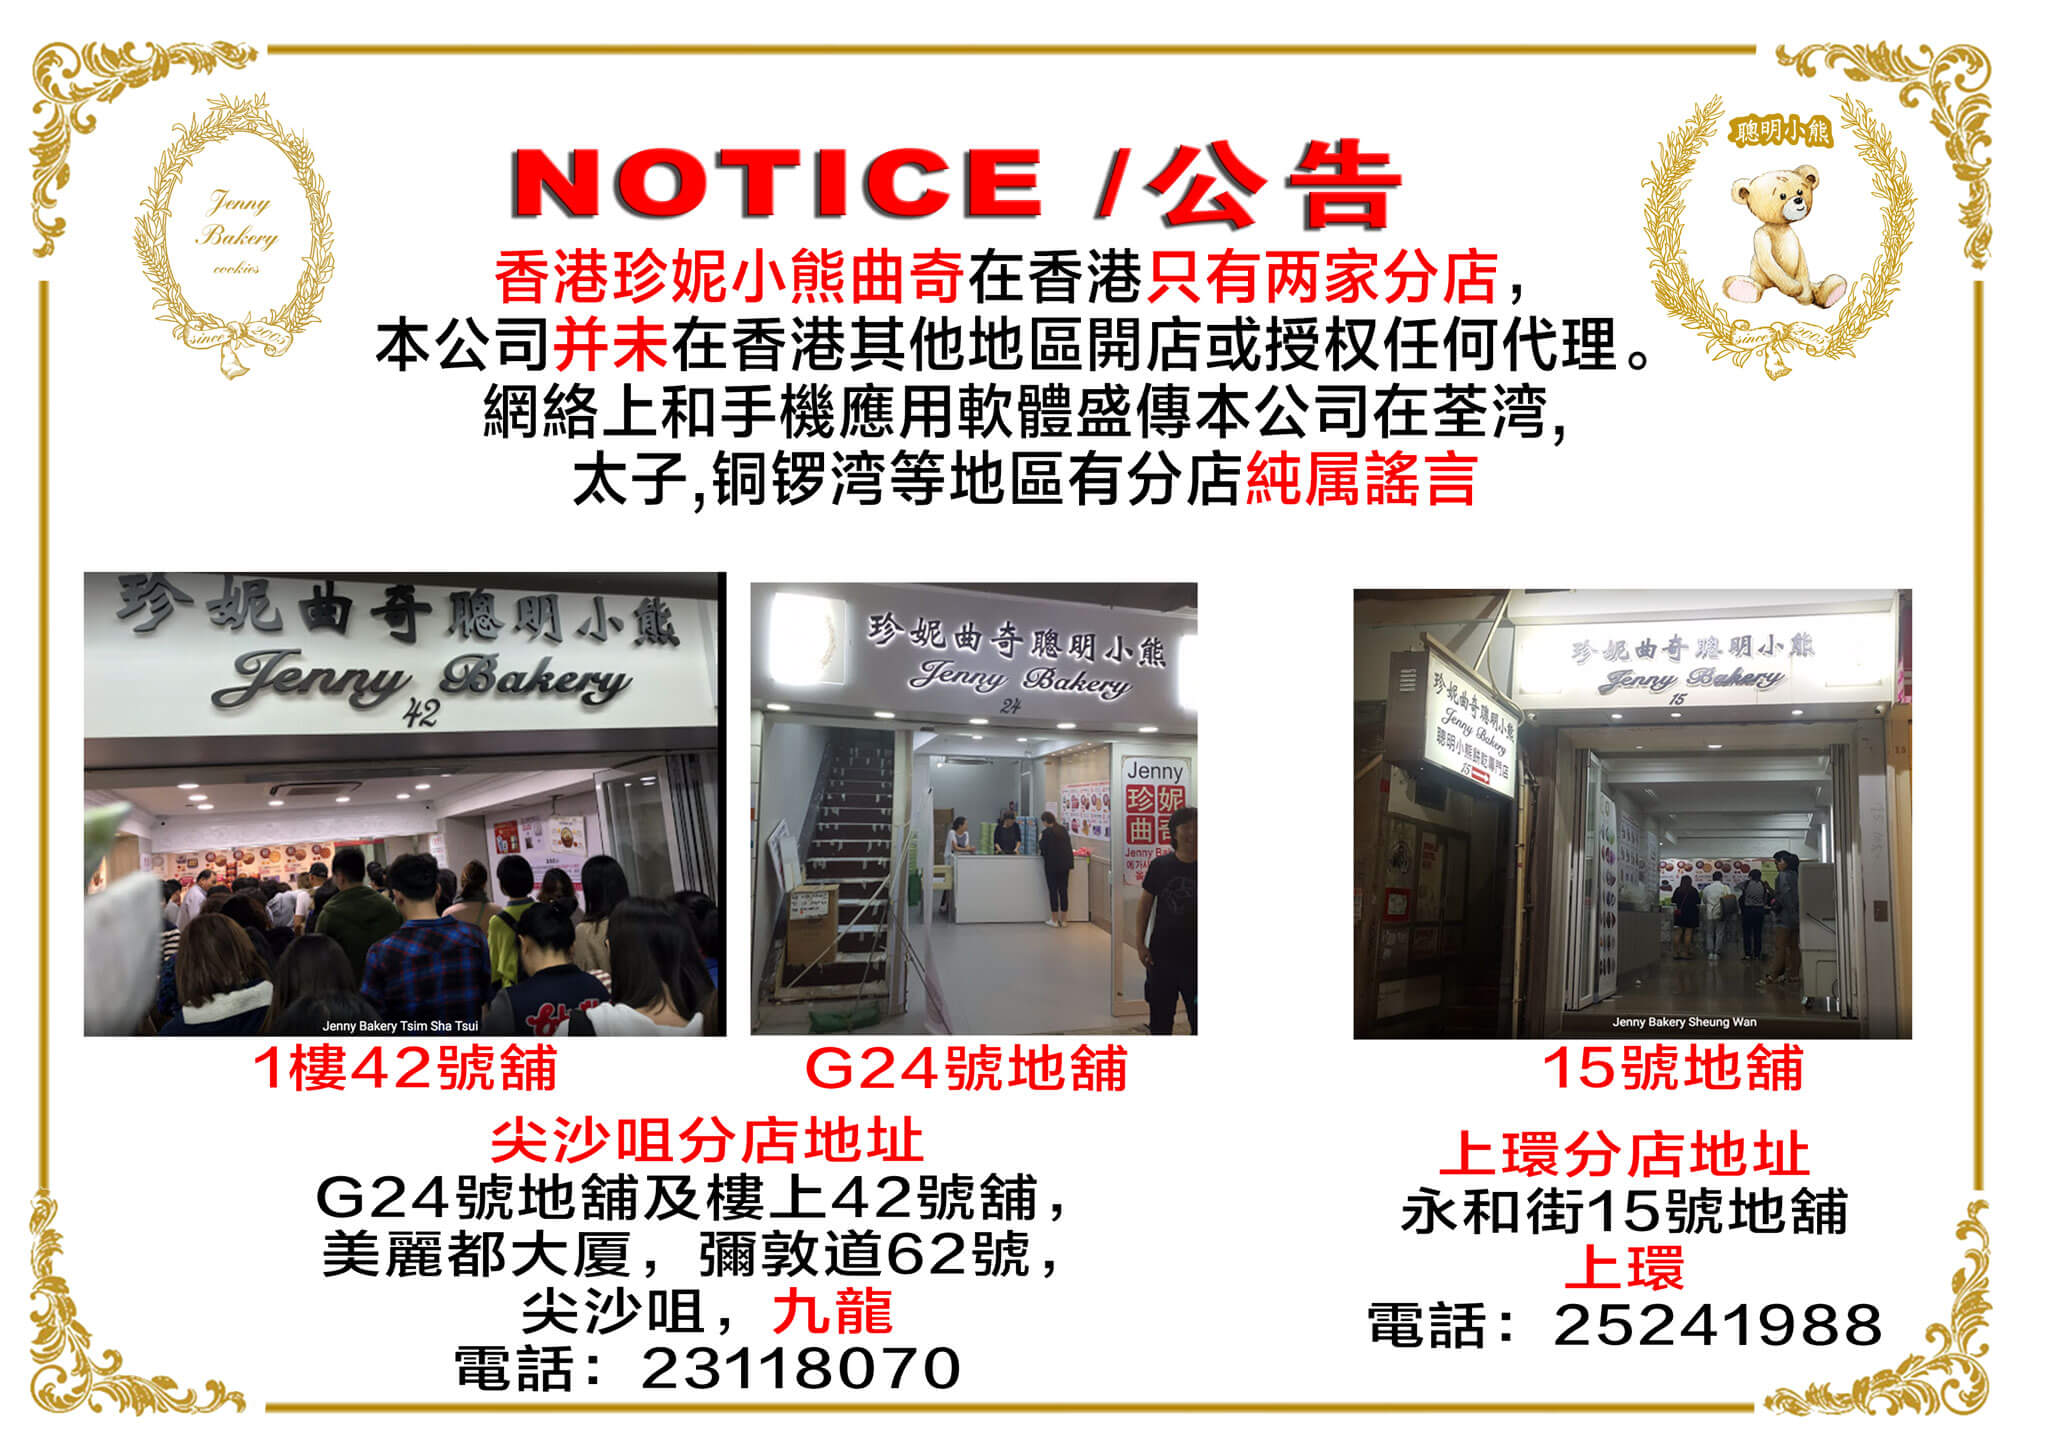 IMPORTANT NOTICE Jenny Bakery Jenny Bakery has only 2 branches in Hong Kong. We do not have any authorized resellers or distributors in any other location within Hong Kong.